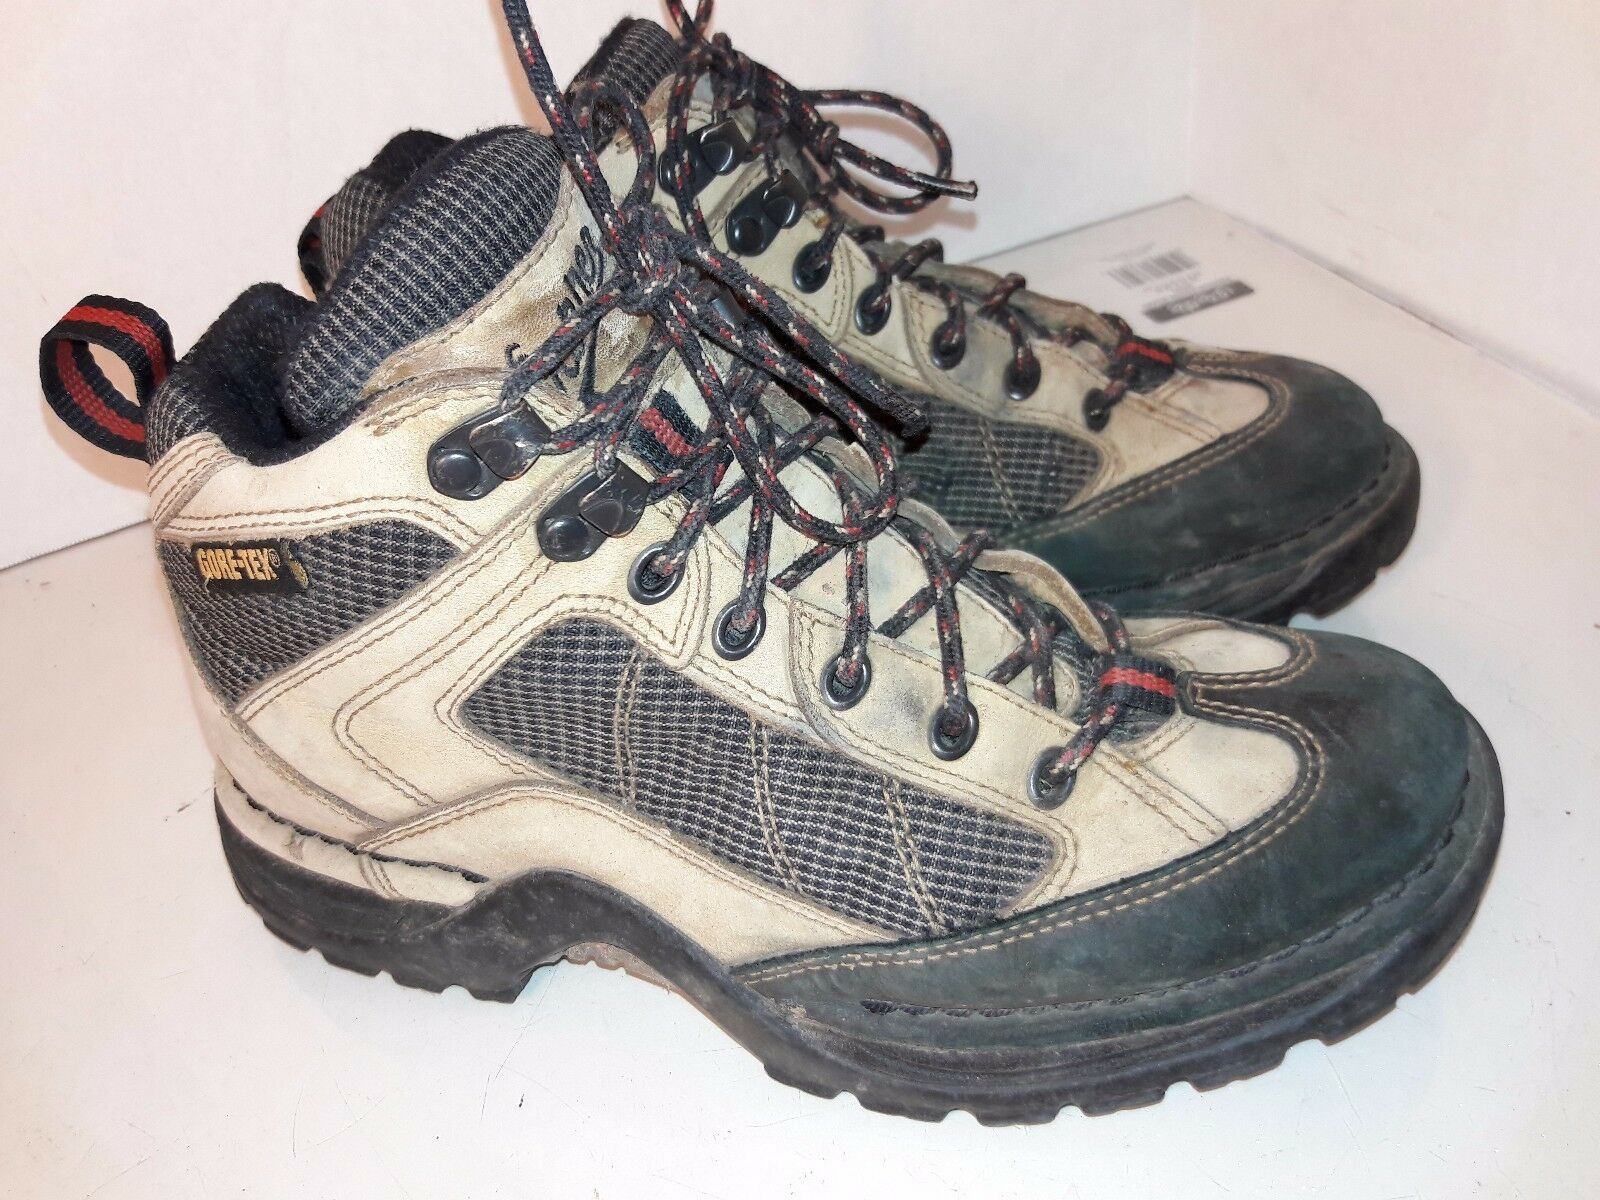 Danner Gore Tex 45012  leather Terra Force Hiking Trail Boots shoes Womens sz 8.